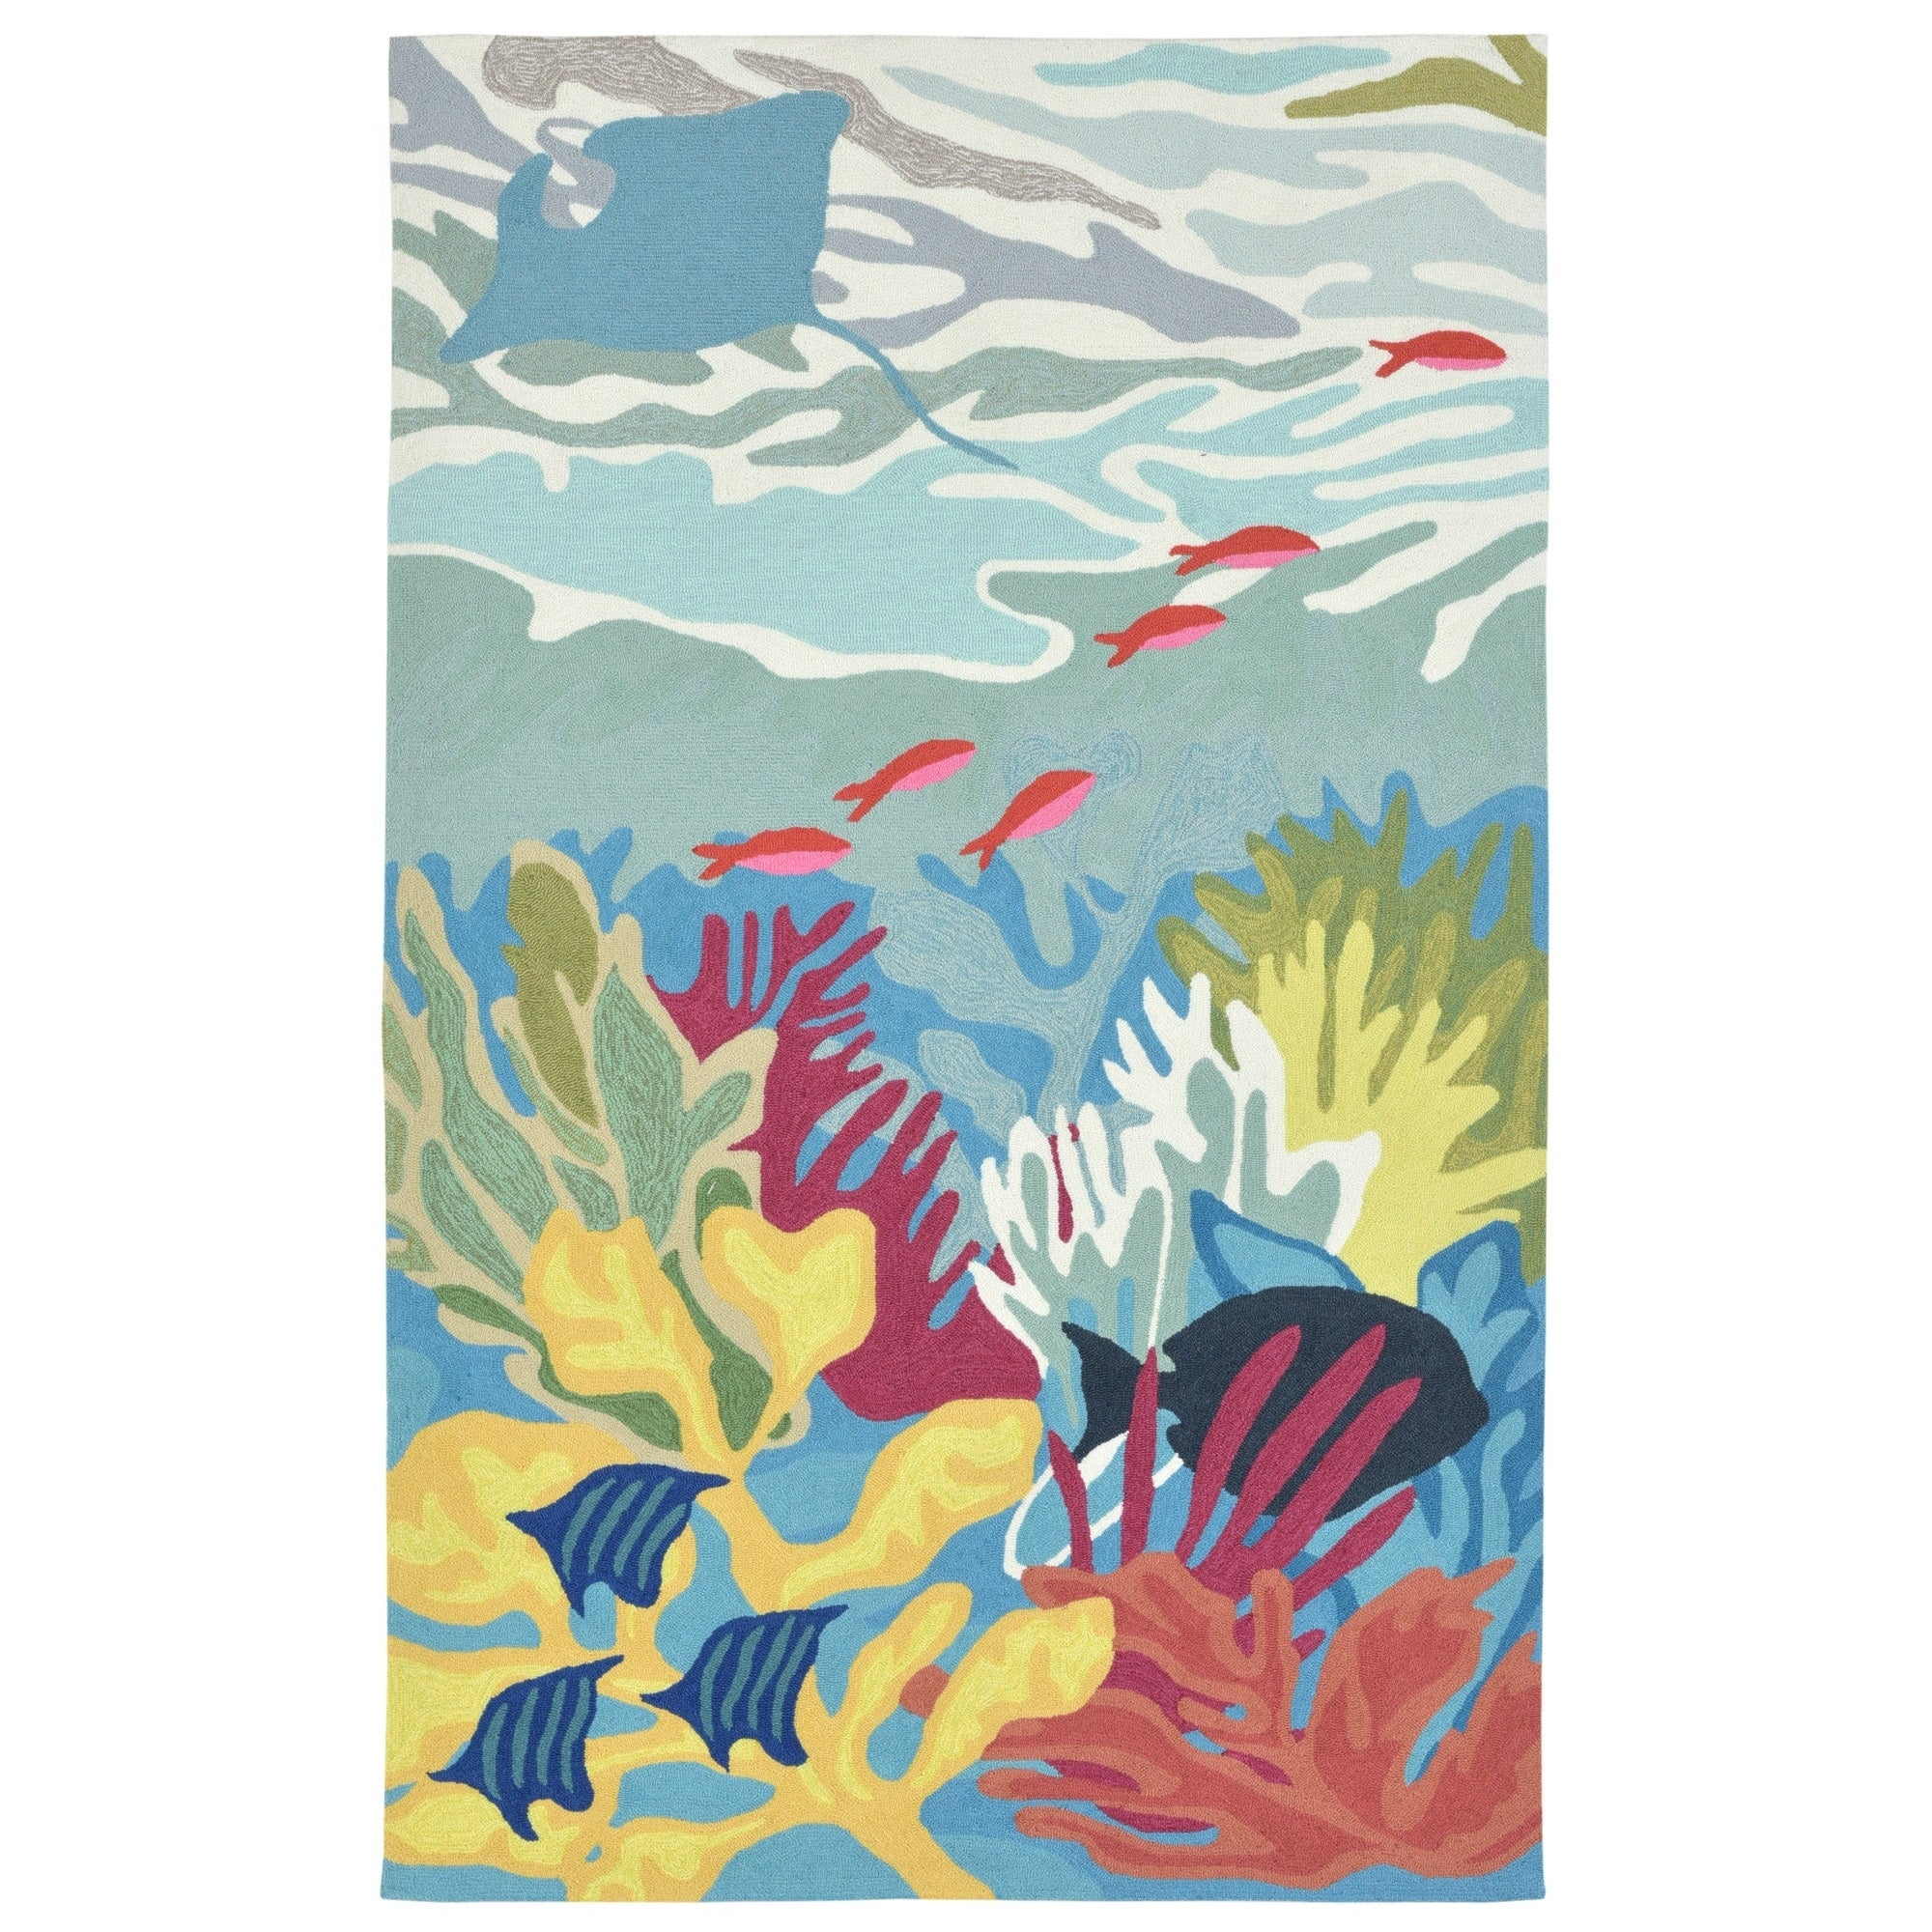 Buy 8' x 12' Area Rugs Online at Overstock | Our Best Rugs Deals Ice House Ftx Ft Designs on